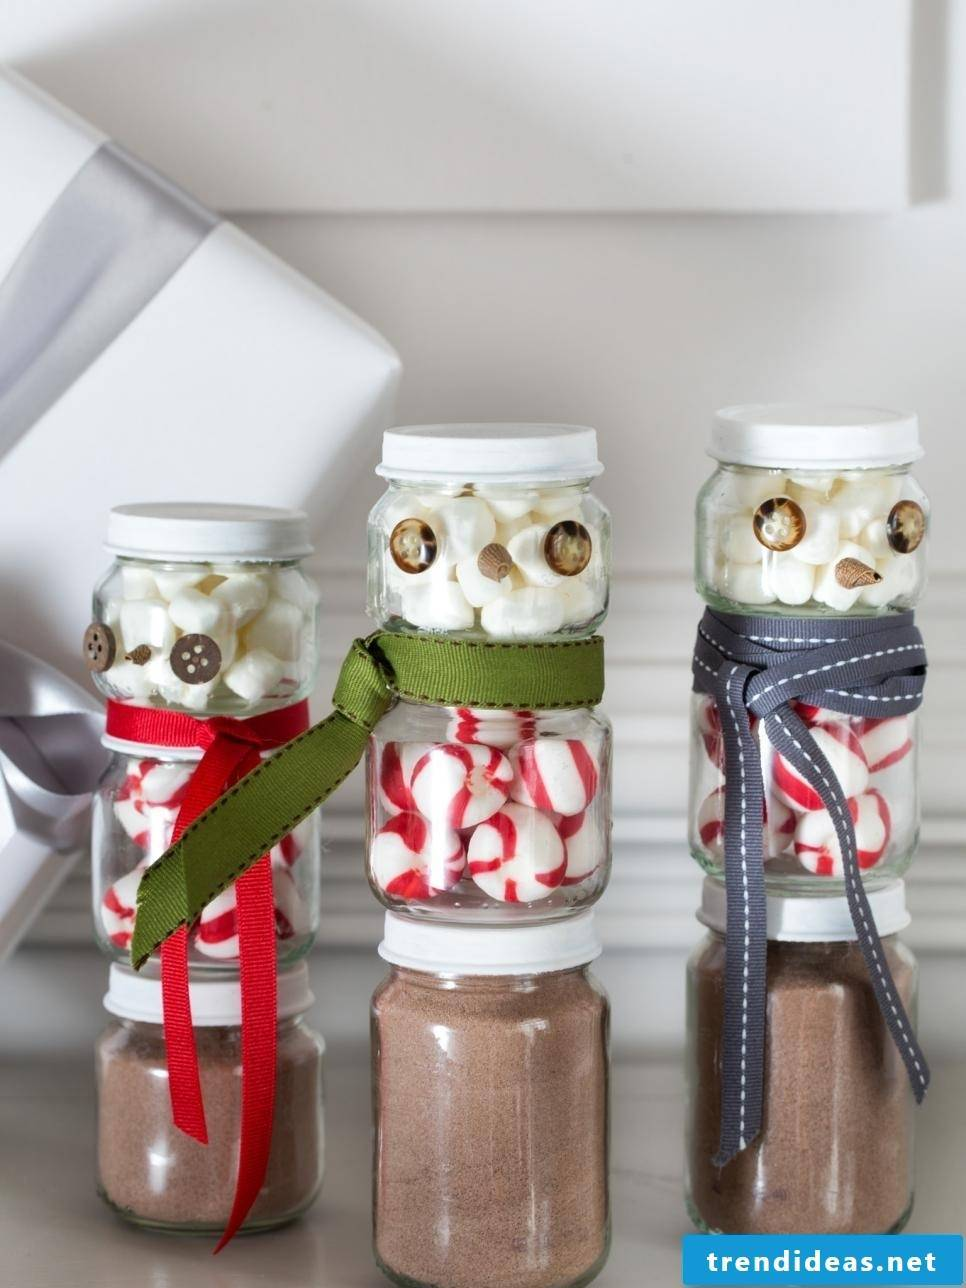 Gifts from the kitchen - Hot chocolate in a glass